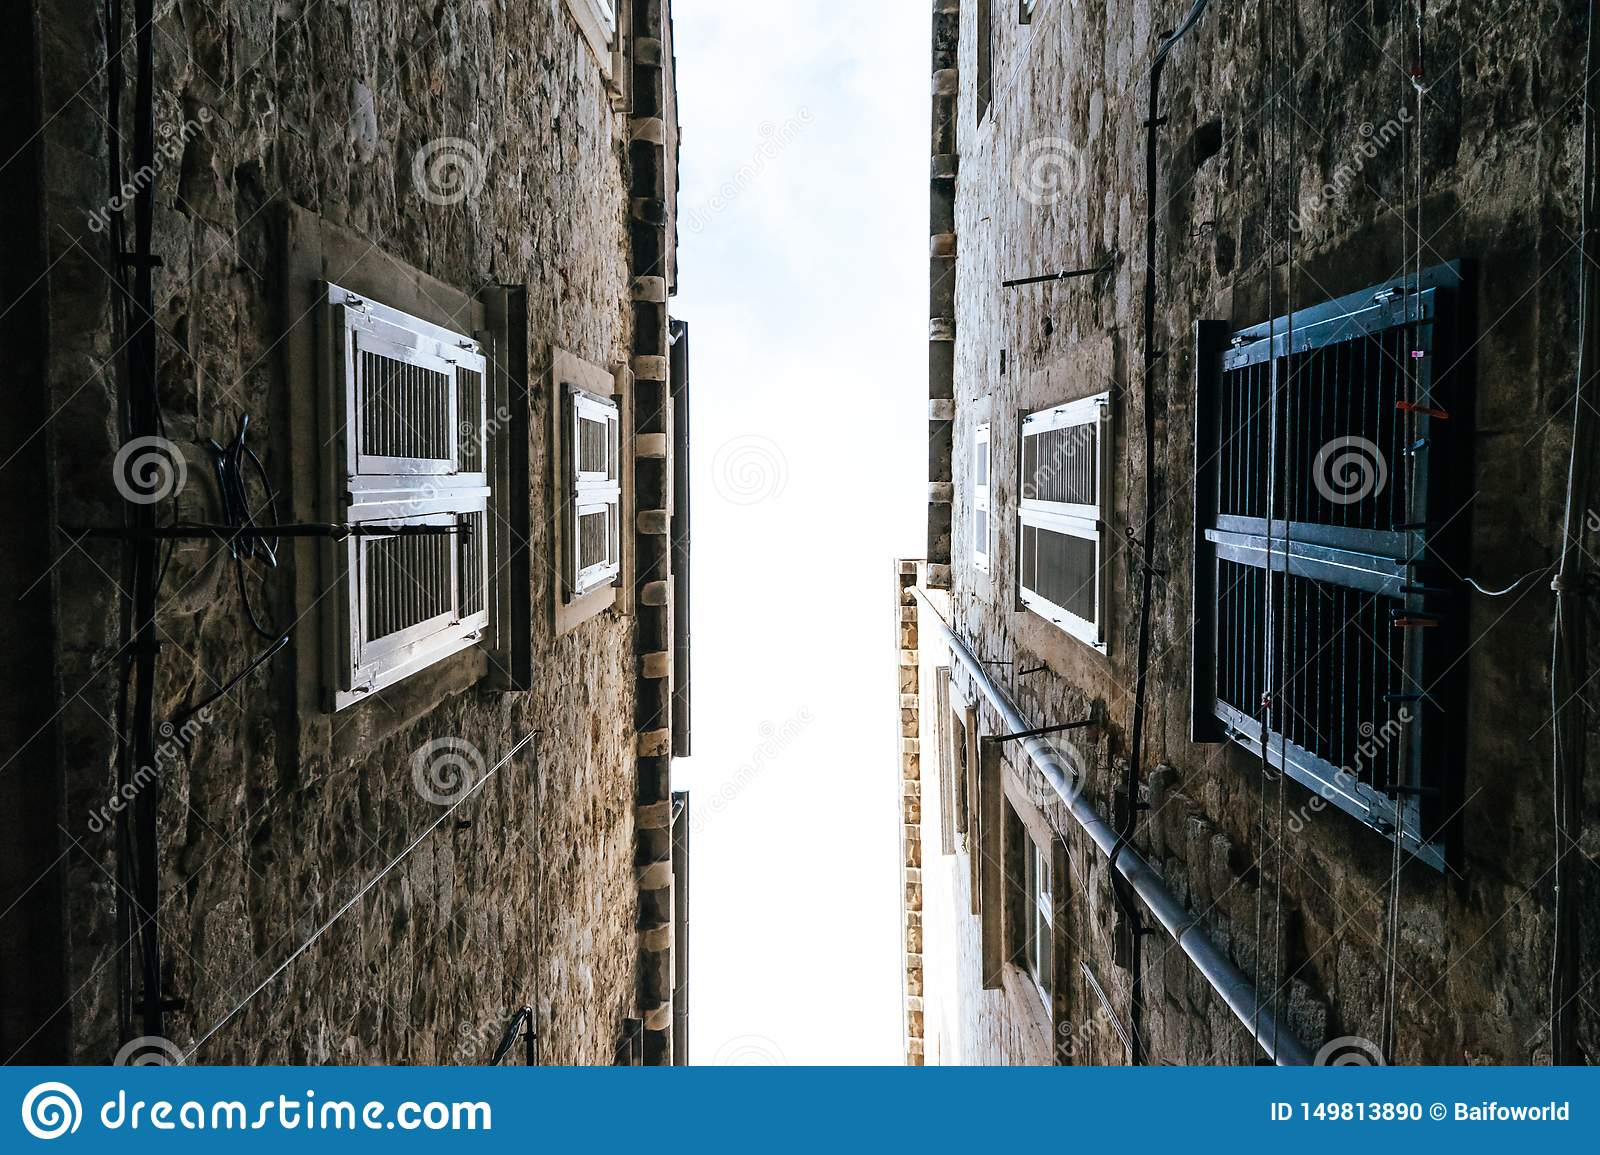 The narrow streets of the old city of Dubrovnik in Croatia, the bottom view of the sky between the stone walls of houses